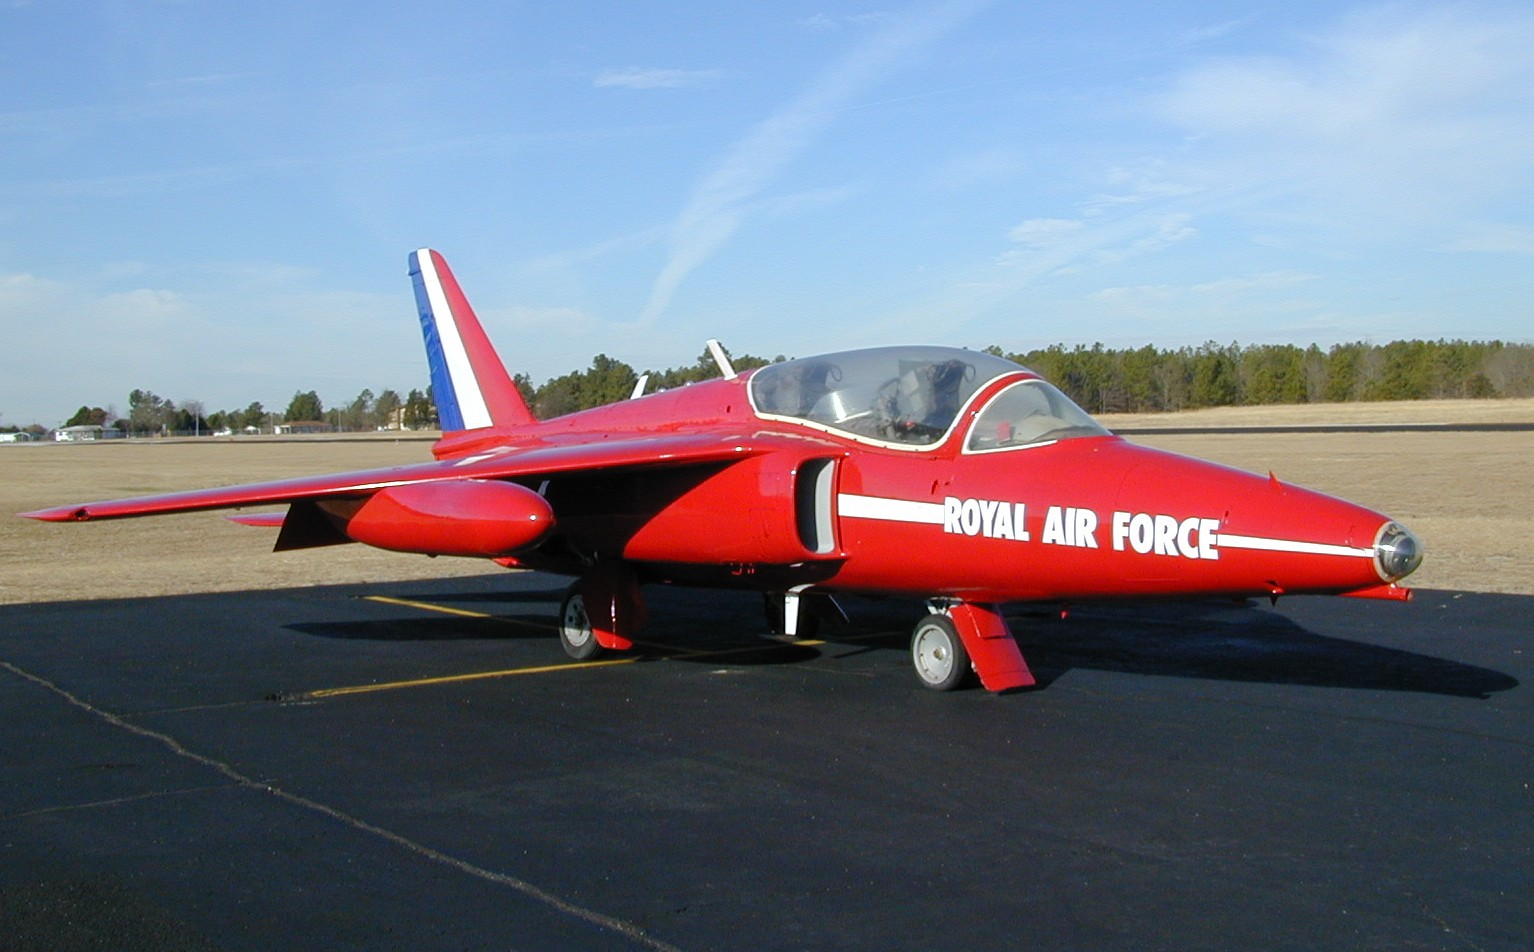 Folland gnat t1 raf old military aviation pinterest raves folland gnat and for sale